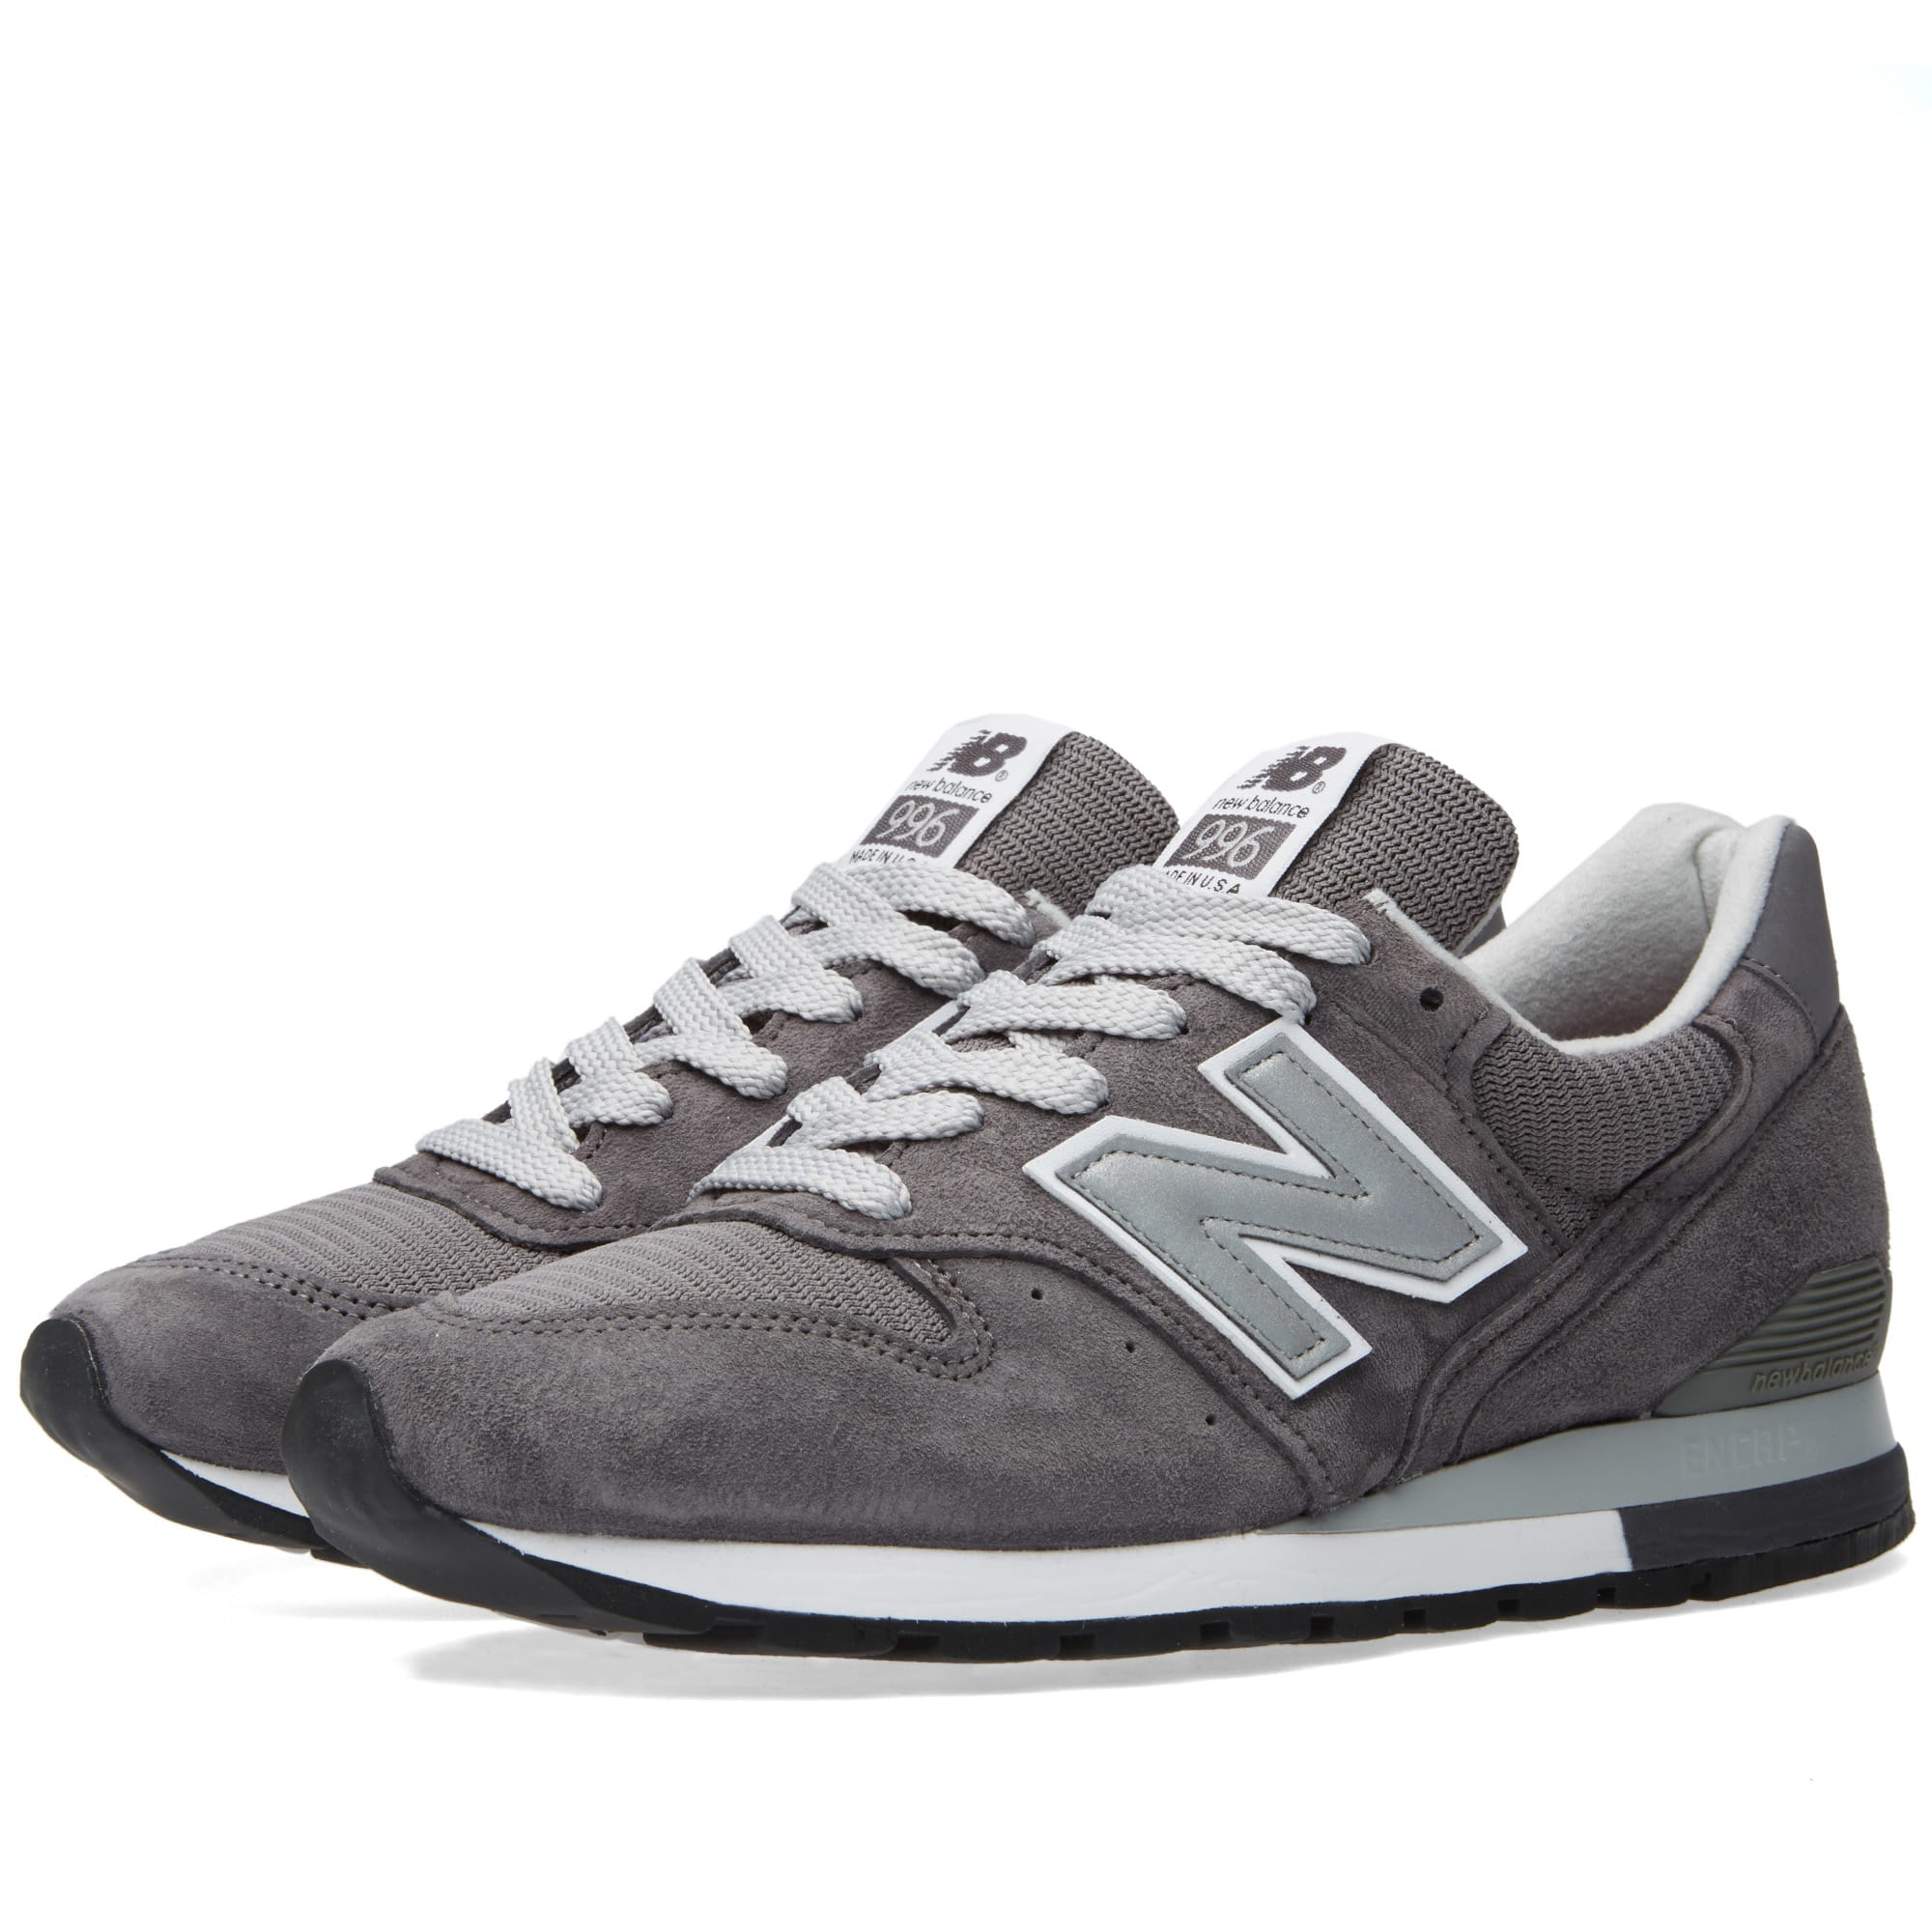 New Balance M996CGY Made in the USA